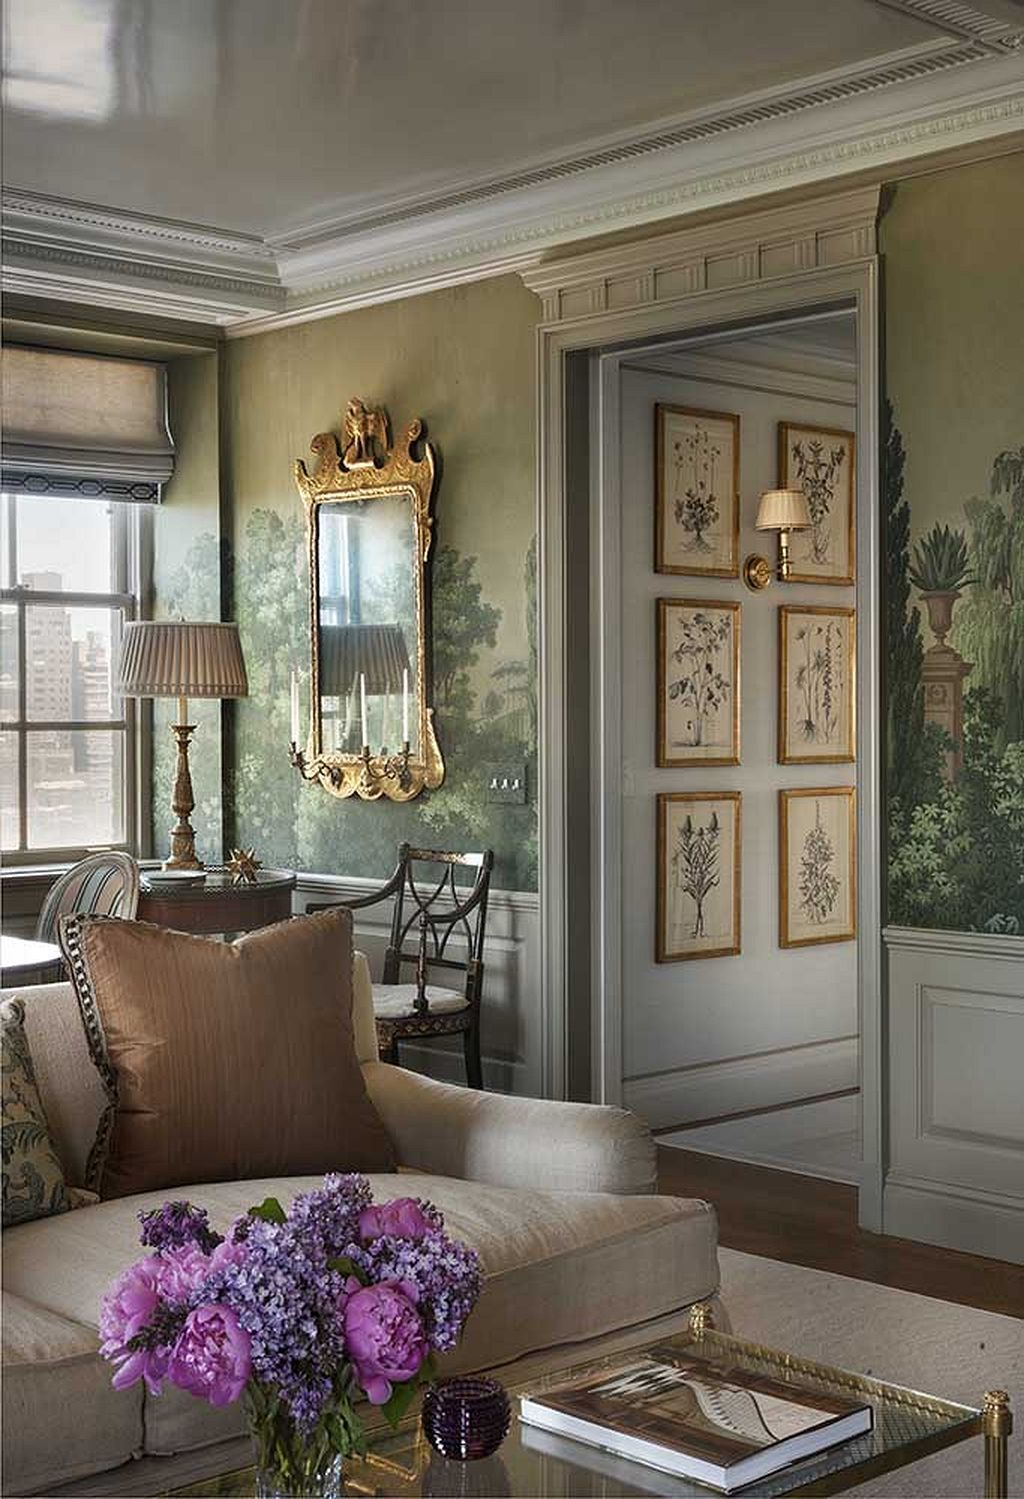 18 Images Of English Country Home Decor Ideas